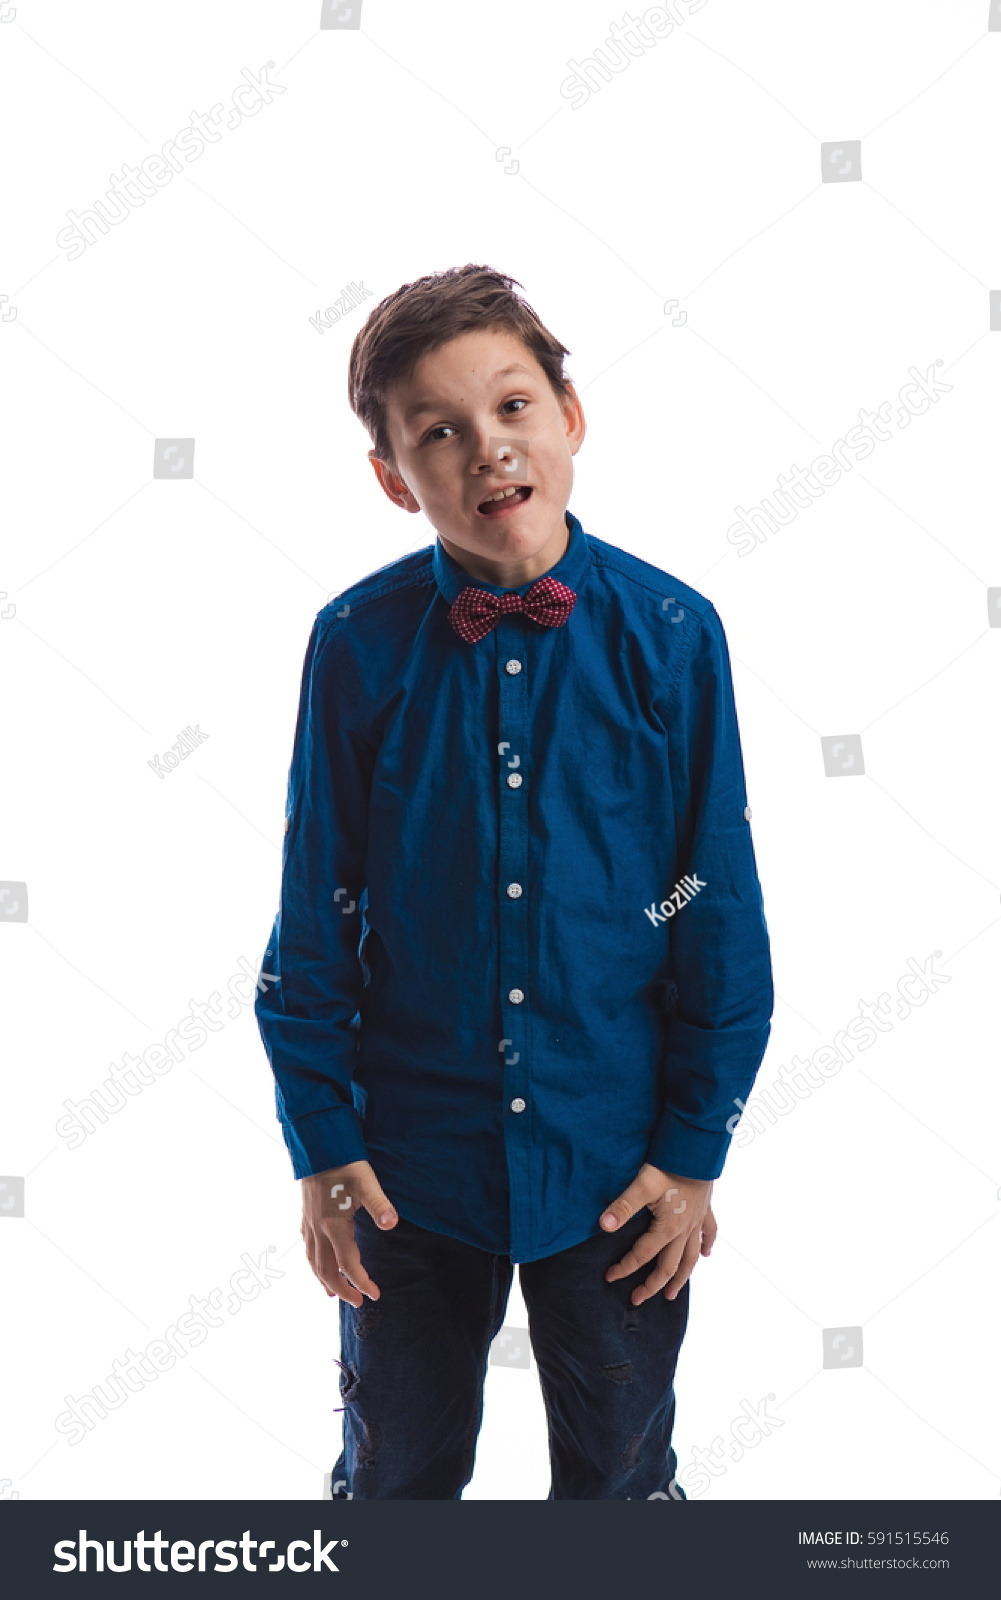 Boy Brunette In A Blue Shirt With A Red Tie Is Posing In The Studio